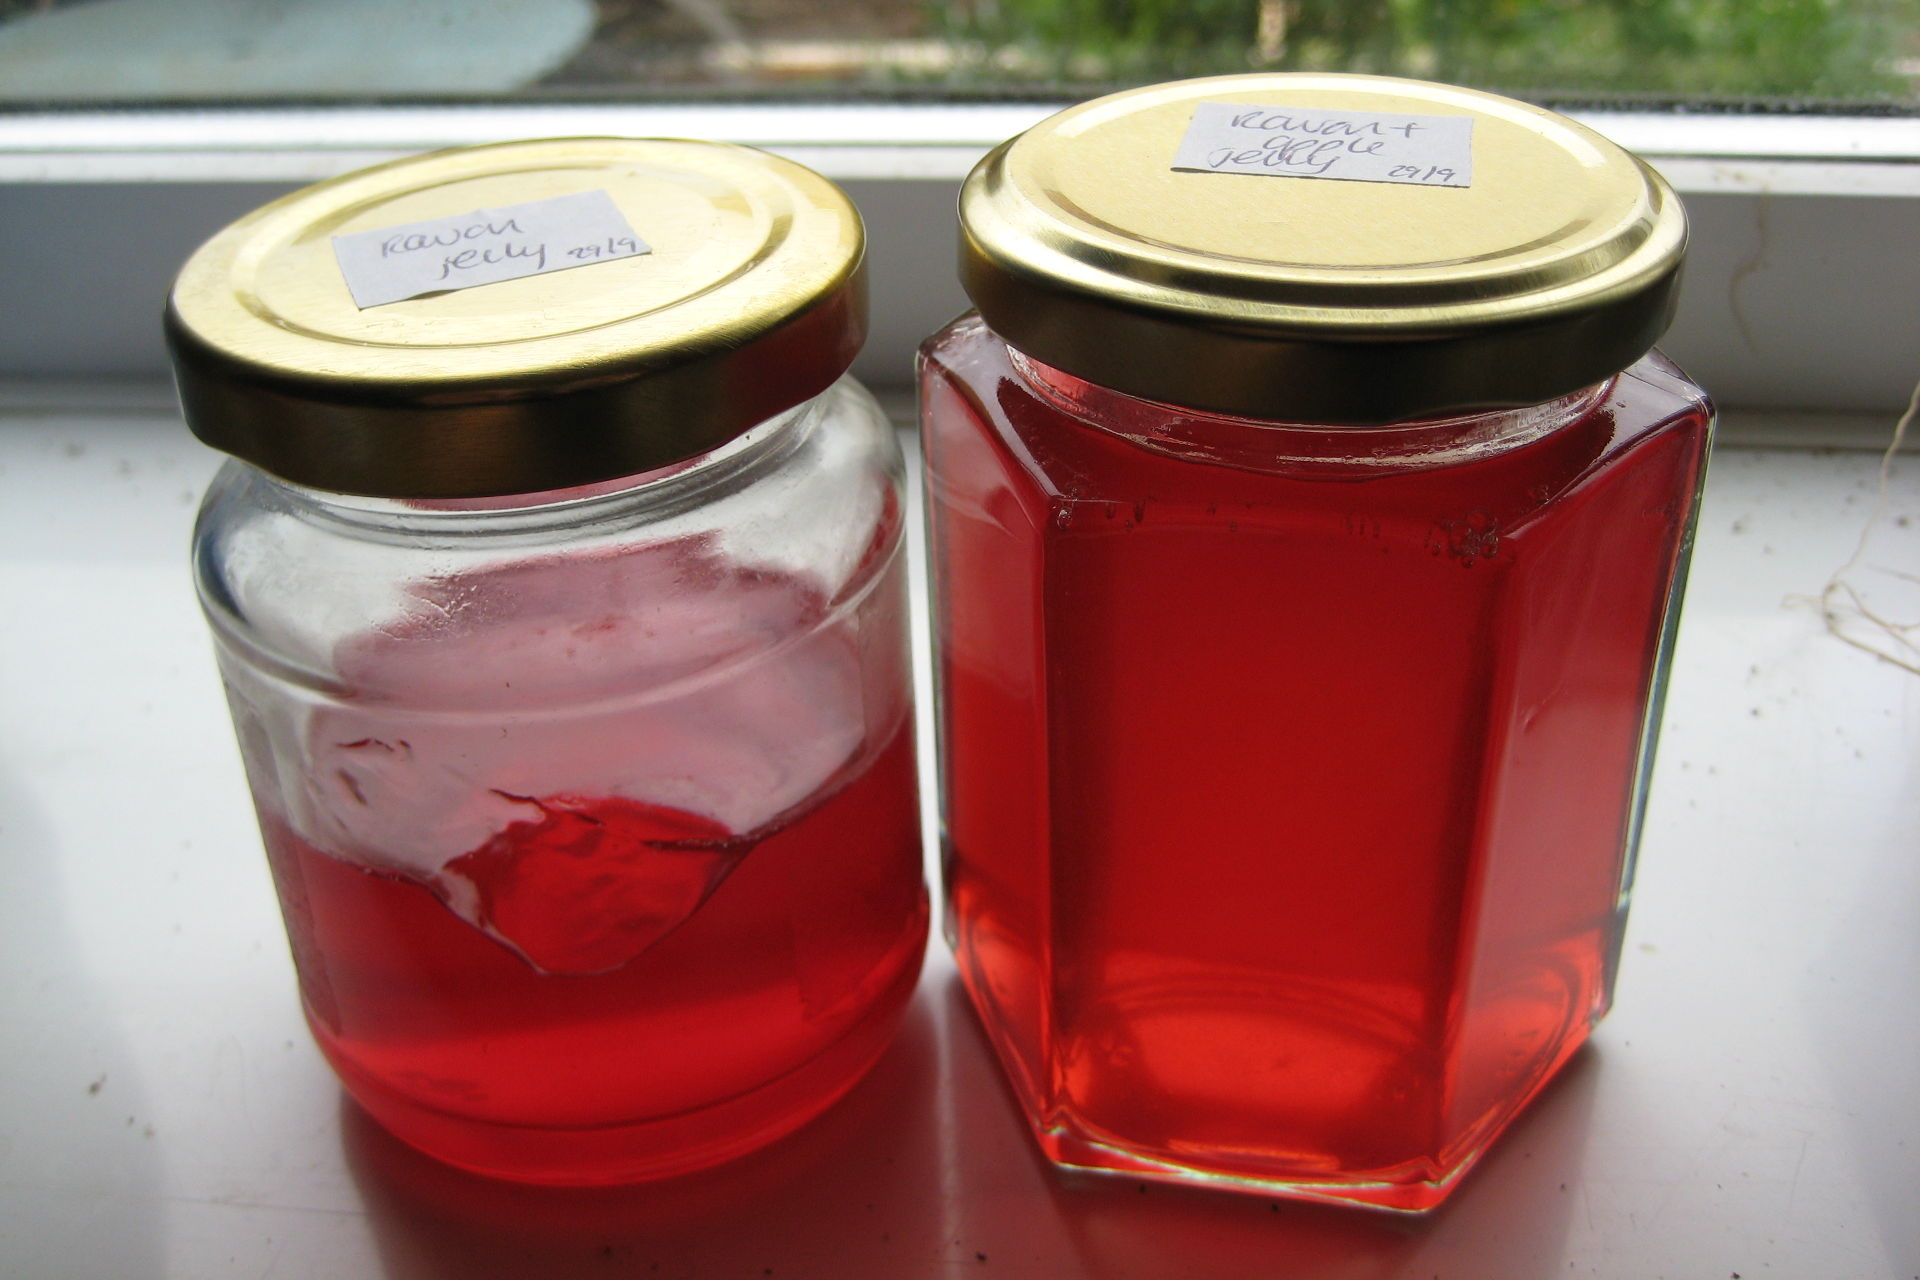 Jars of ruby rowan jelly